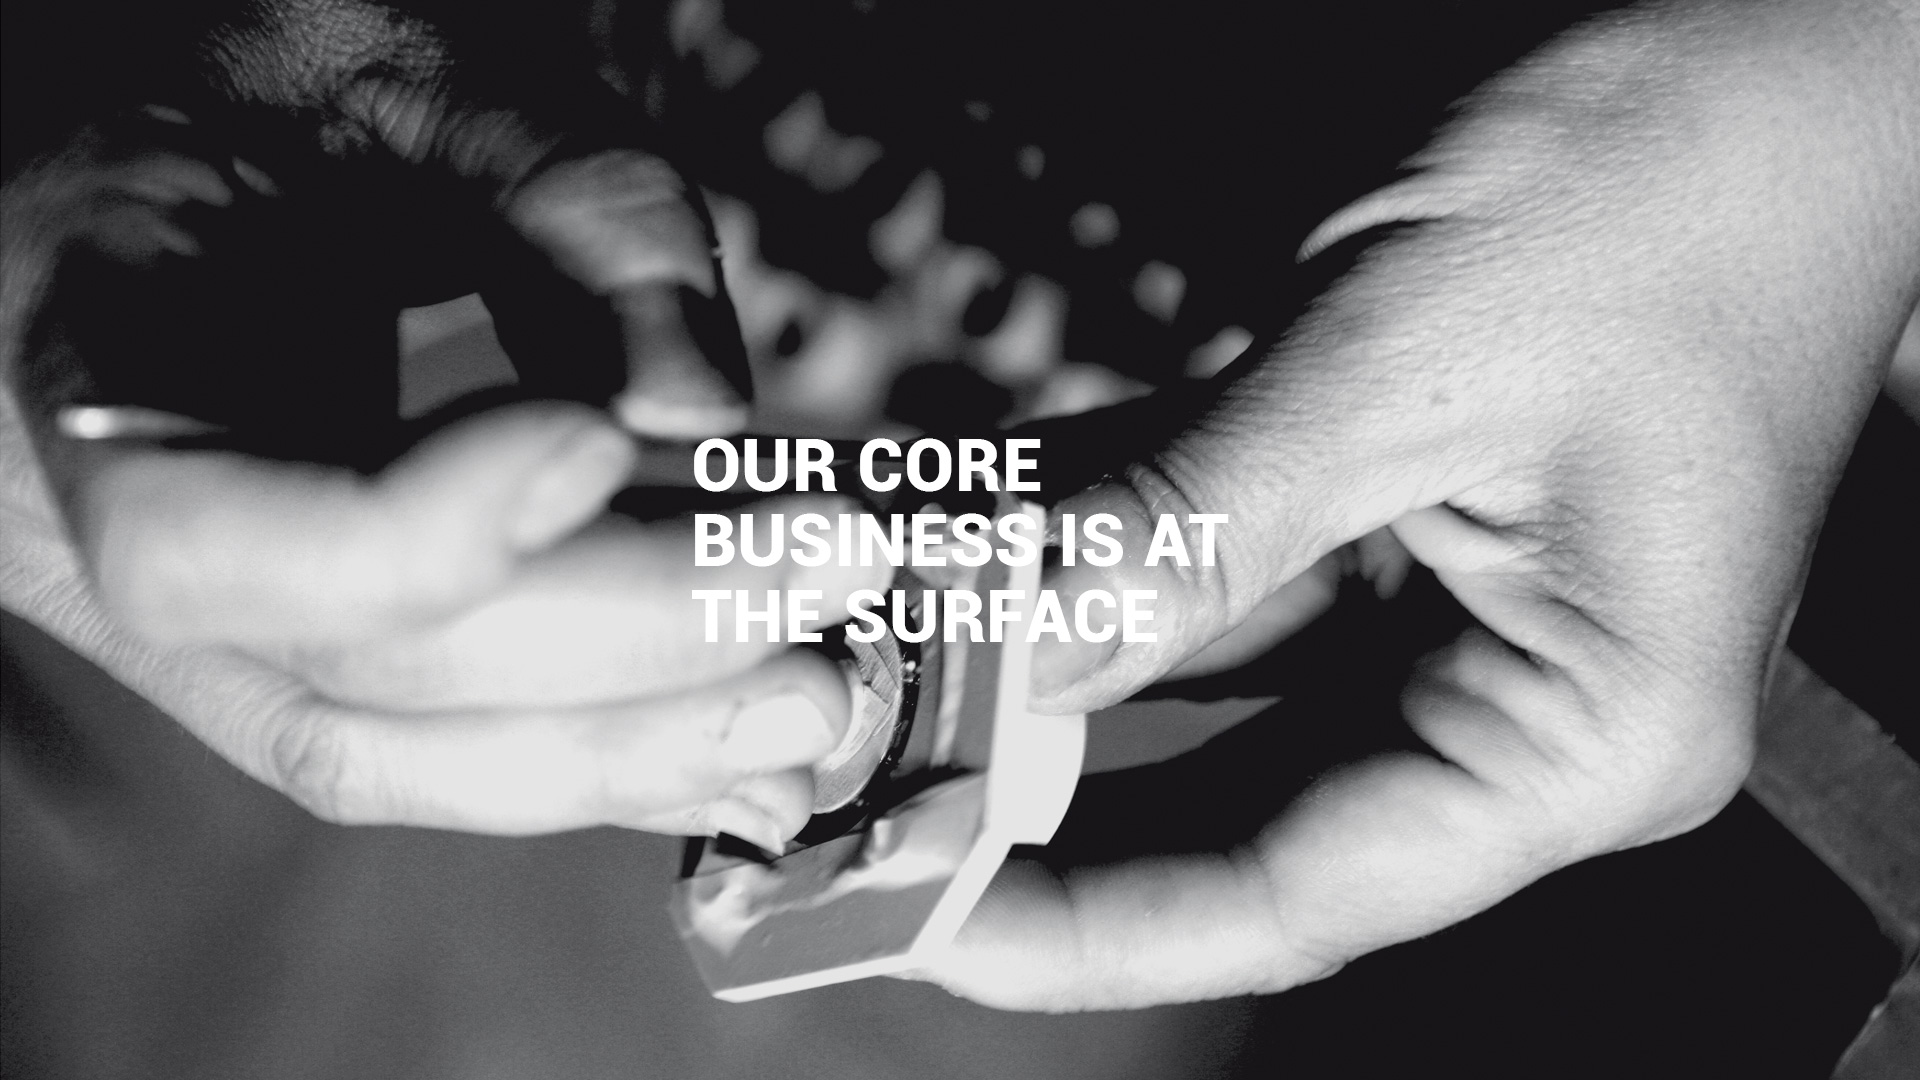 Our core business is at the surface